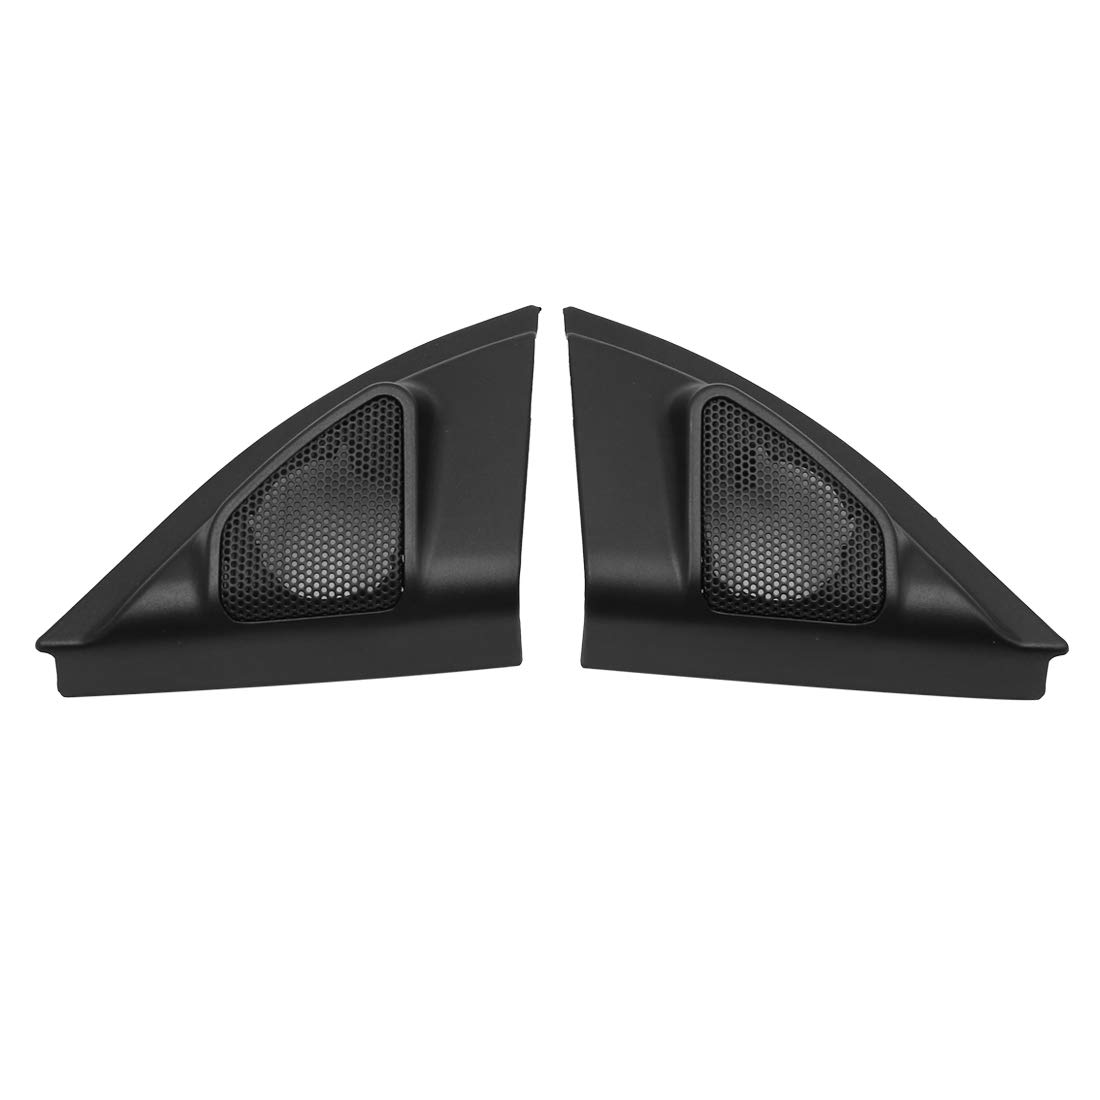 uxcell Pair Black Car Speaker Trim Cover Tweeter Protector for 2013-2017 Toyota Vios